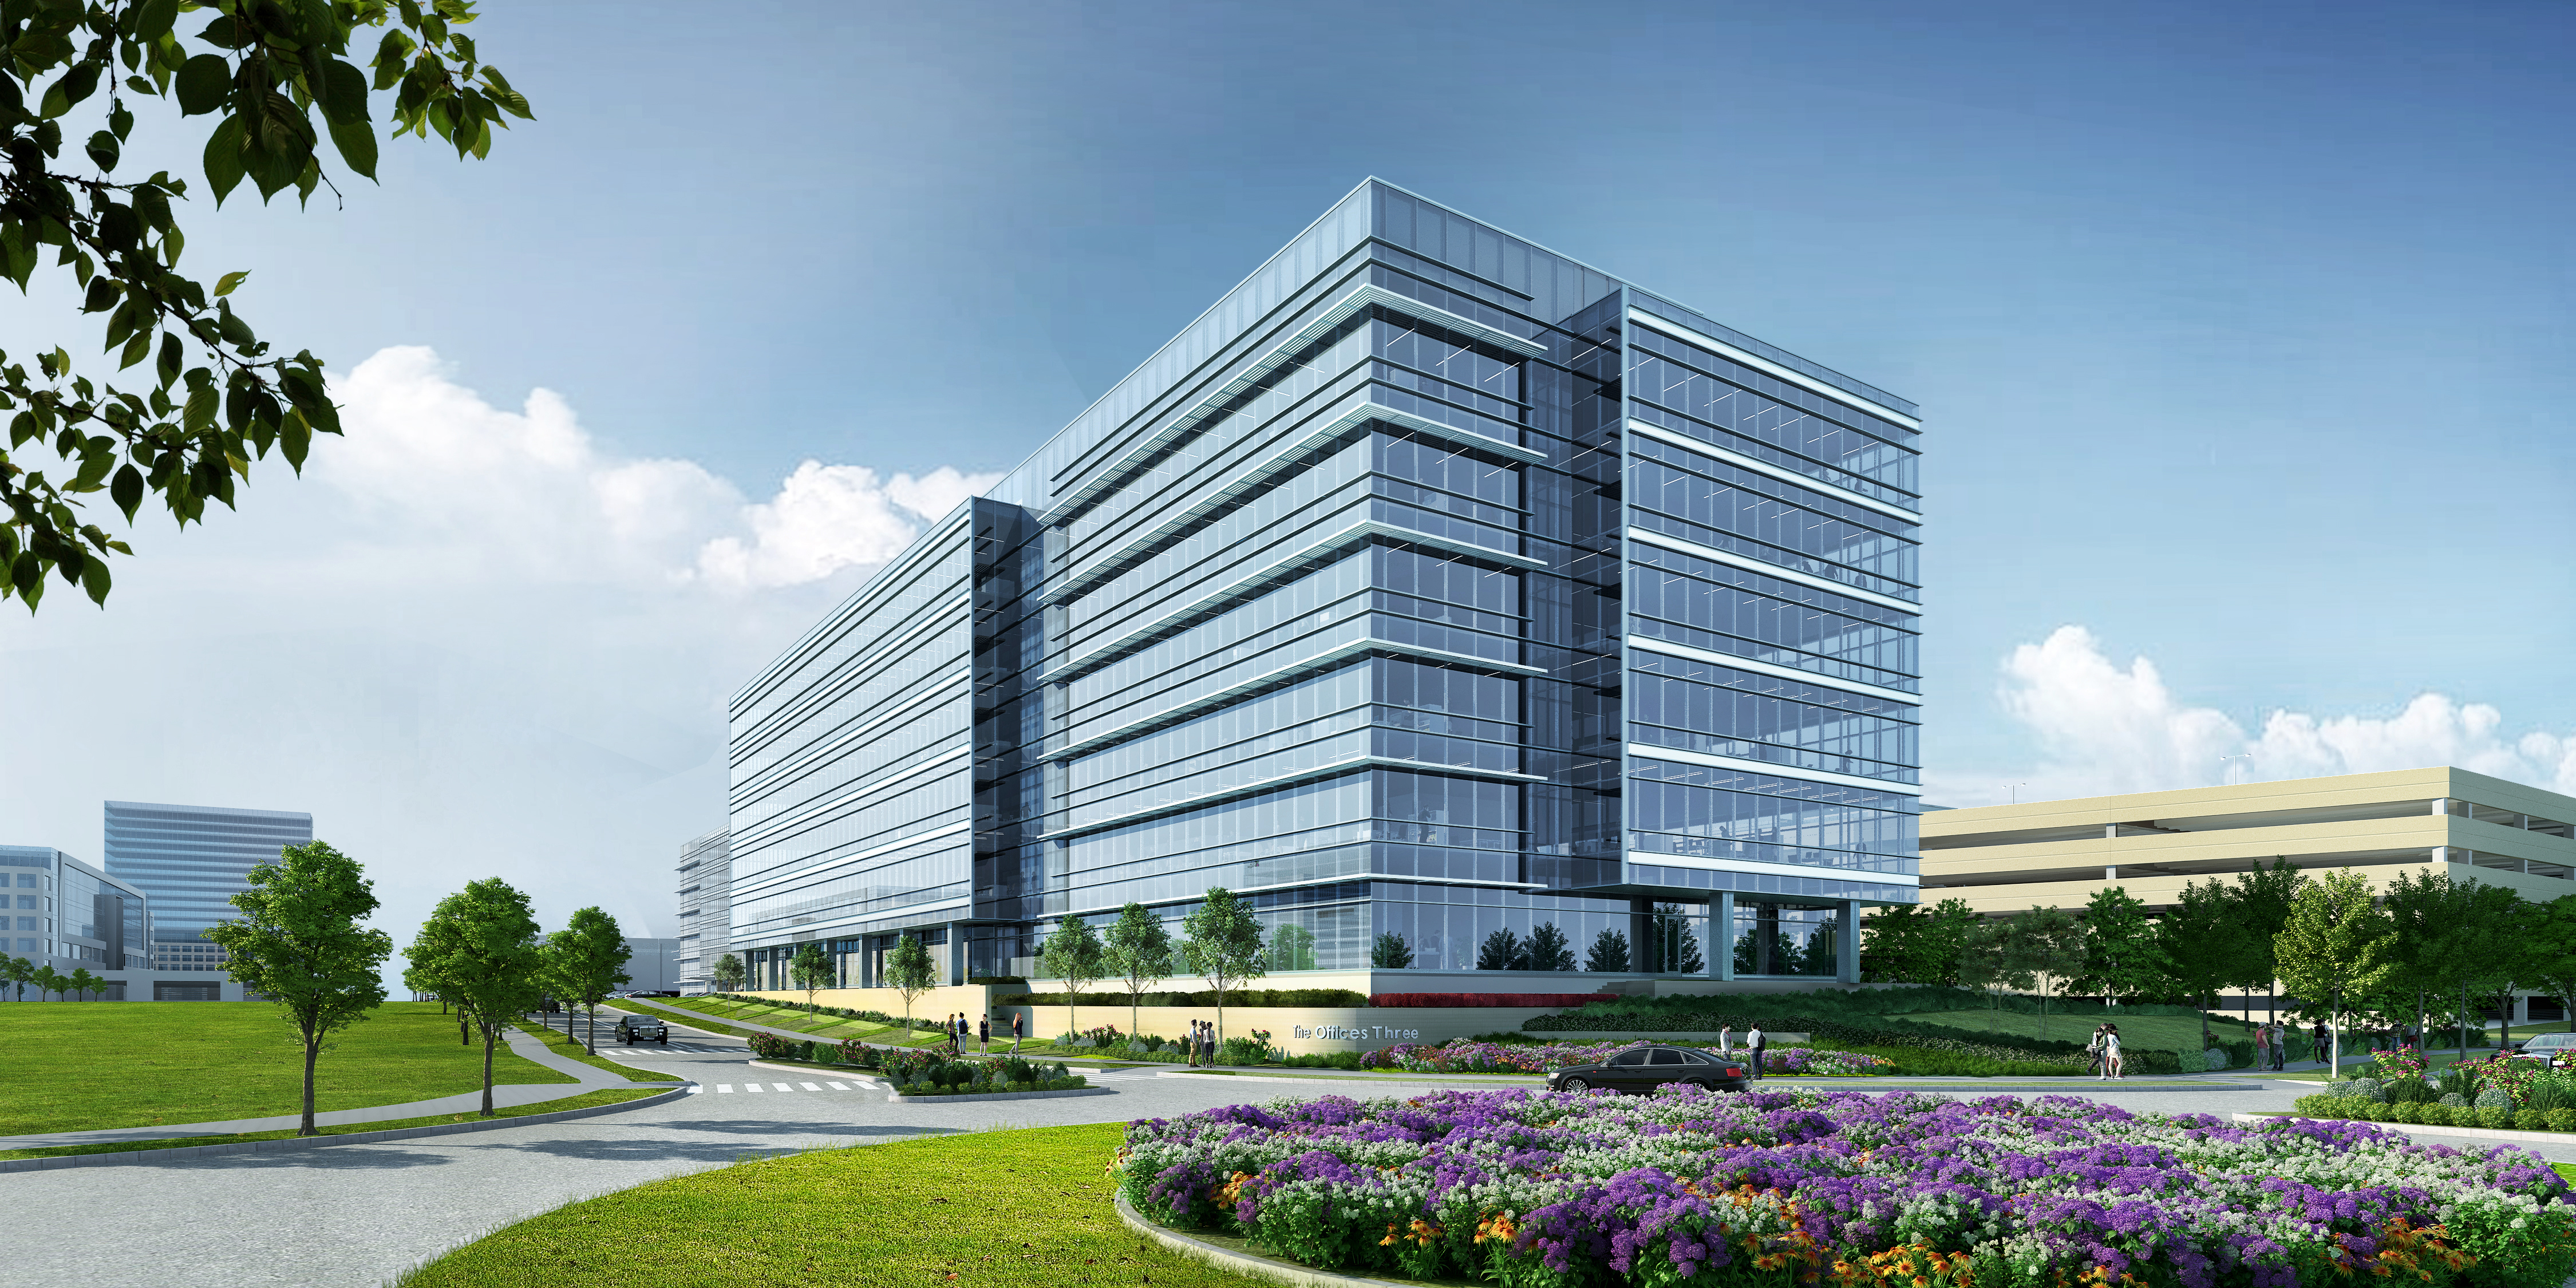 Third office building ready to start in $1.8 billion Frisco Station